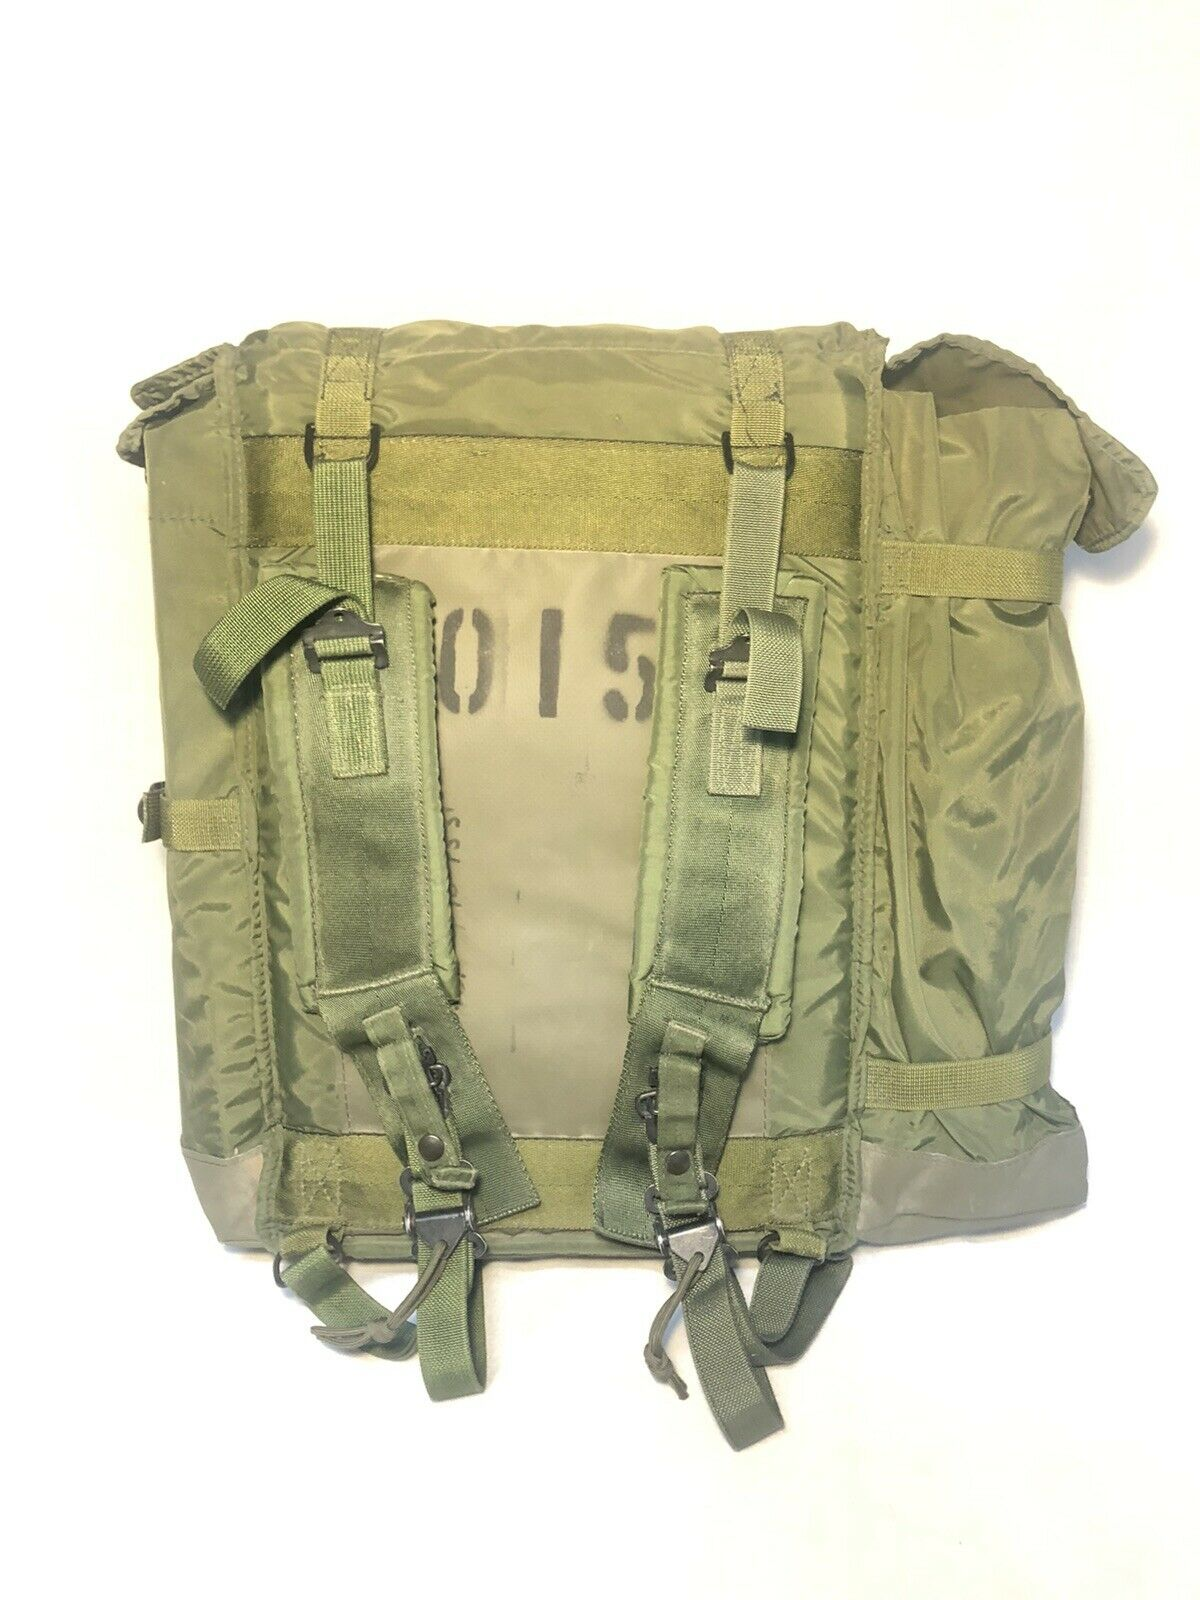 US MILITARY HARRIS FIELDTEX RADIO RANGER RUCKSACK BACKPACK RUCK SHOULDER STRAPS